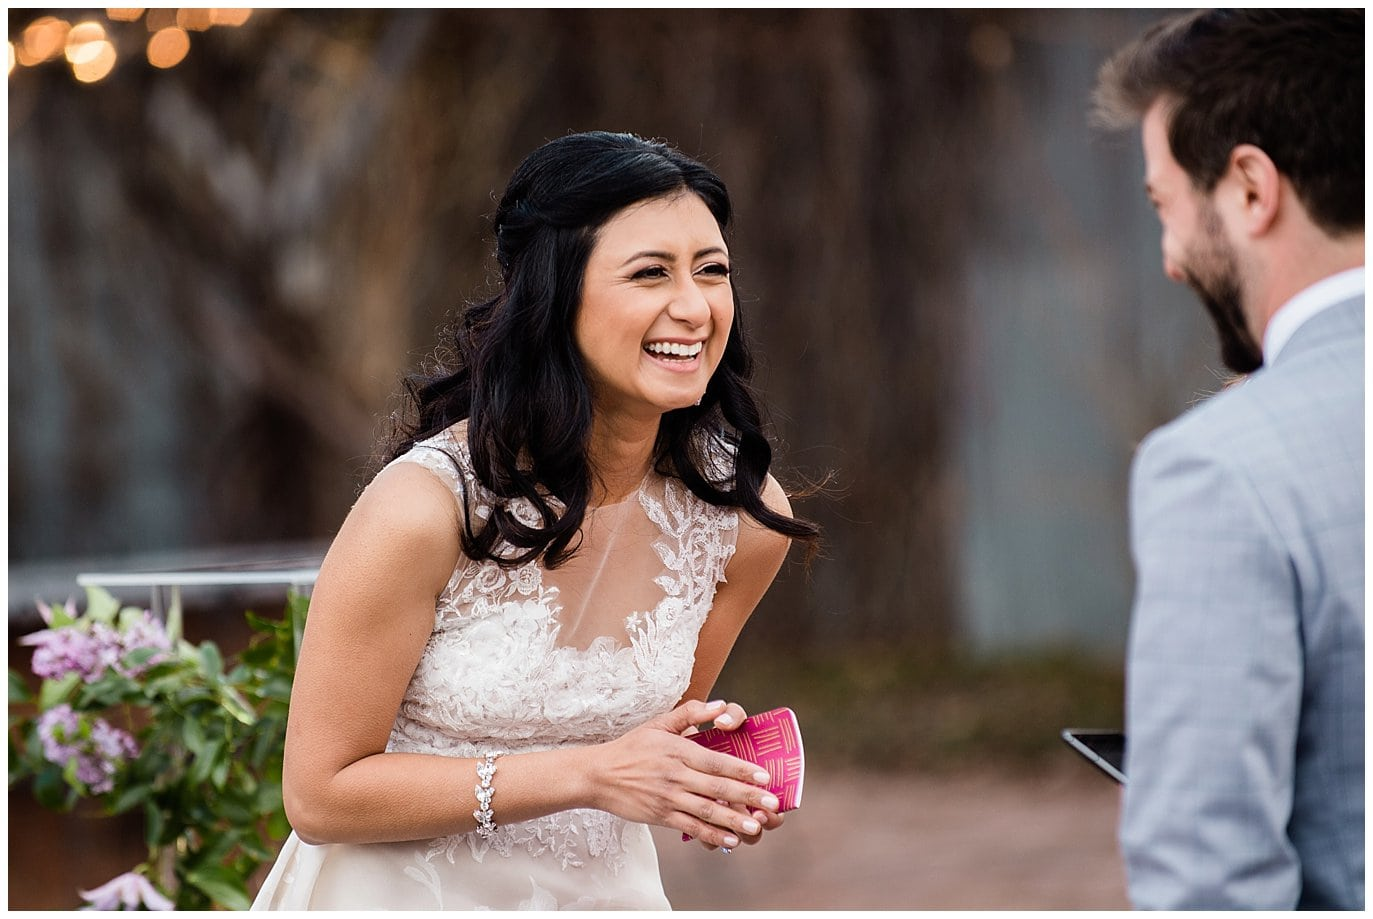 bride laughing during vows by Blanc Wedding Photographer Jennie Crate